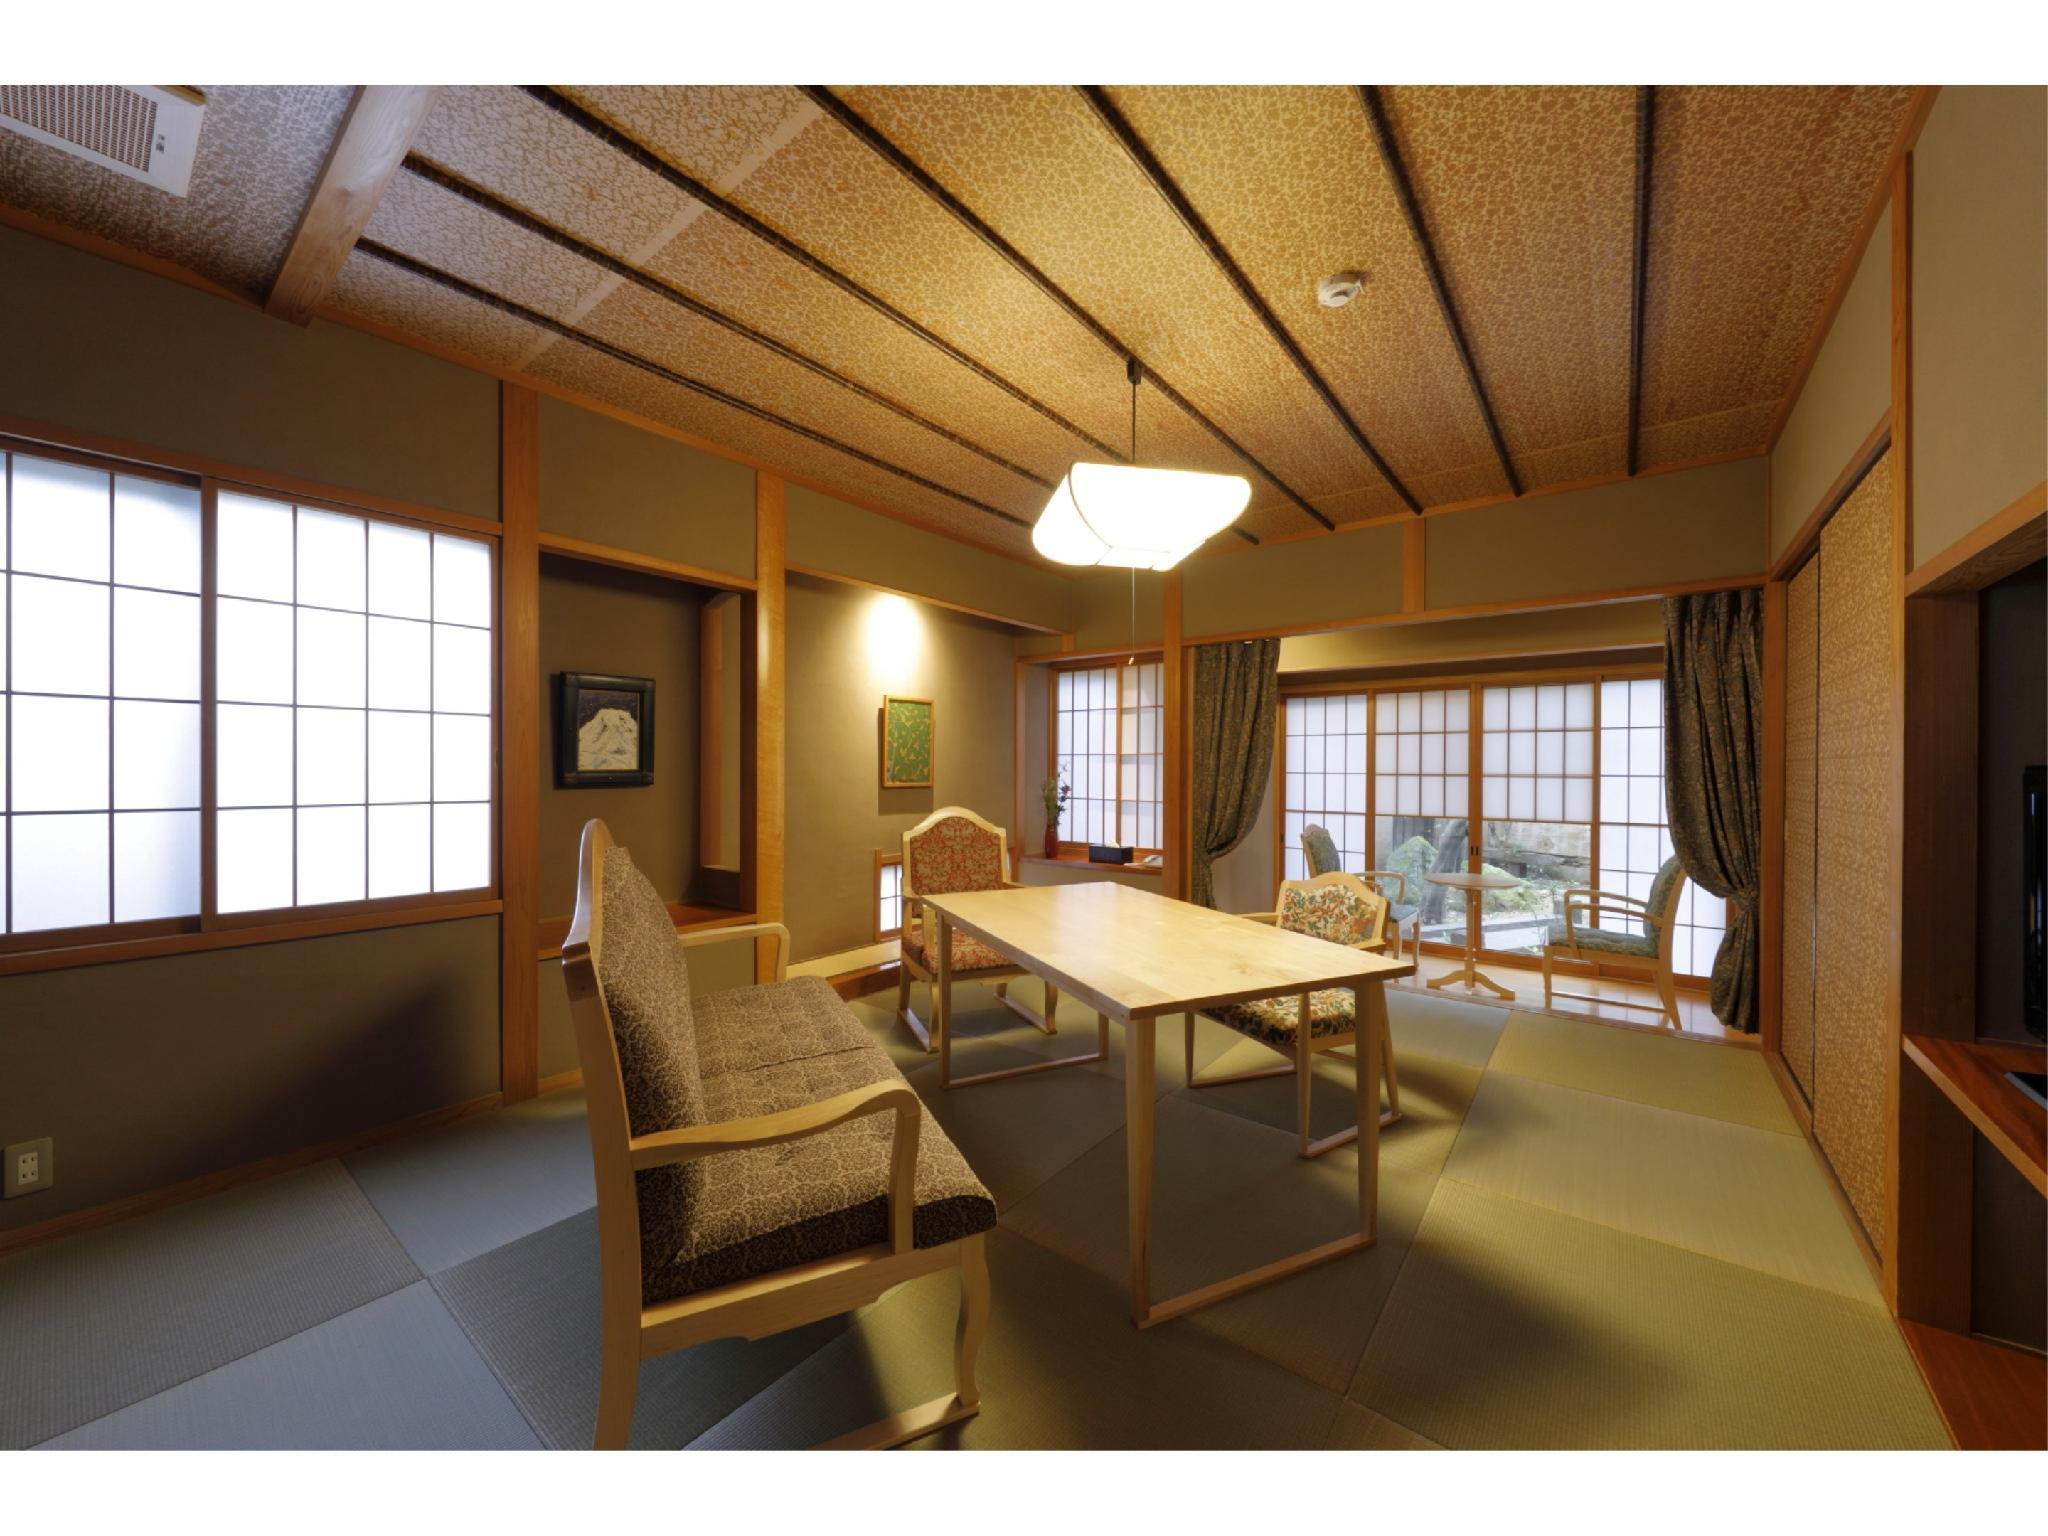 복층형 객실(별채/원천방류식 노천탕) (Detached Maisonette with Open-air Hot Spring Bath)